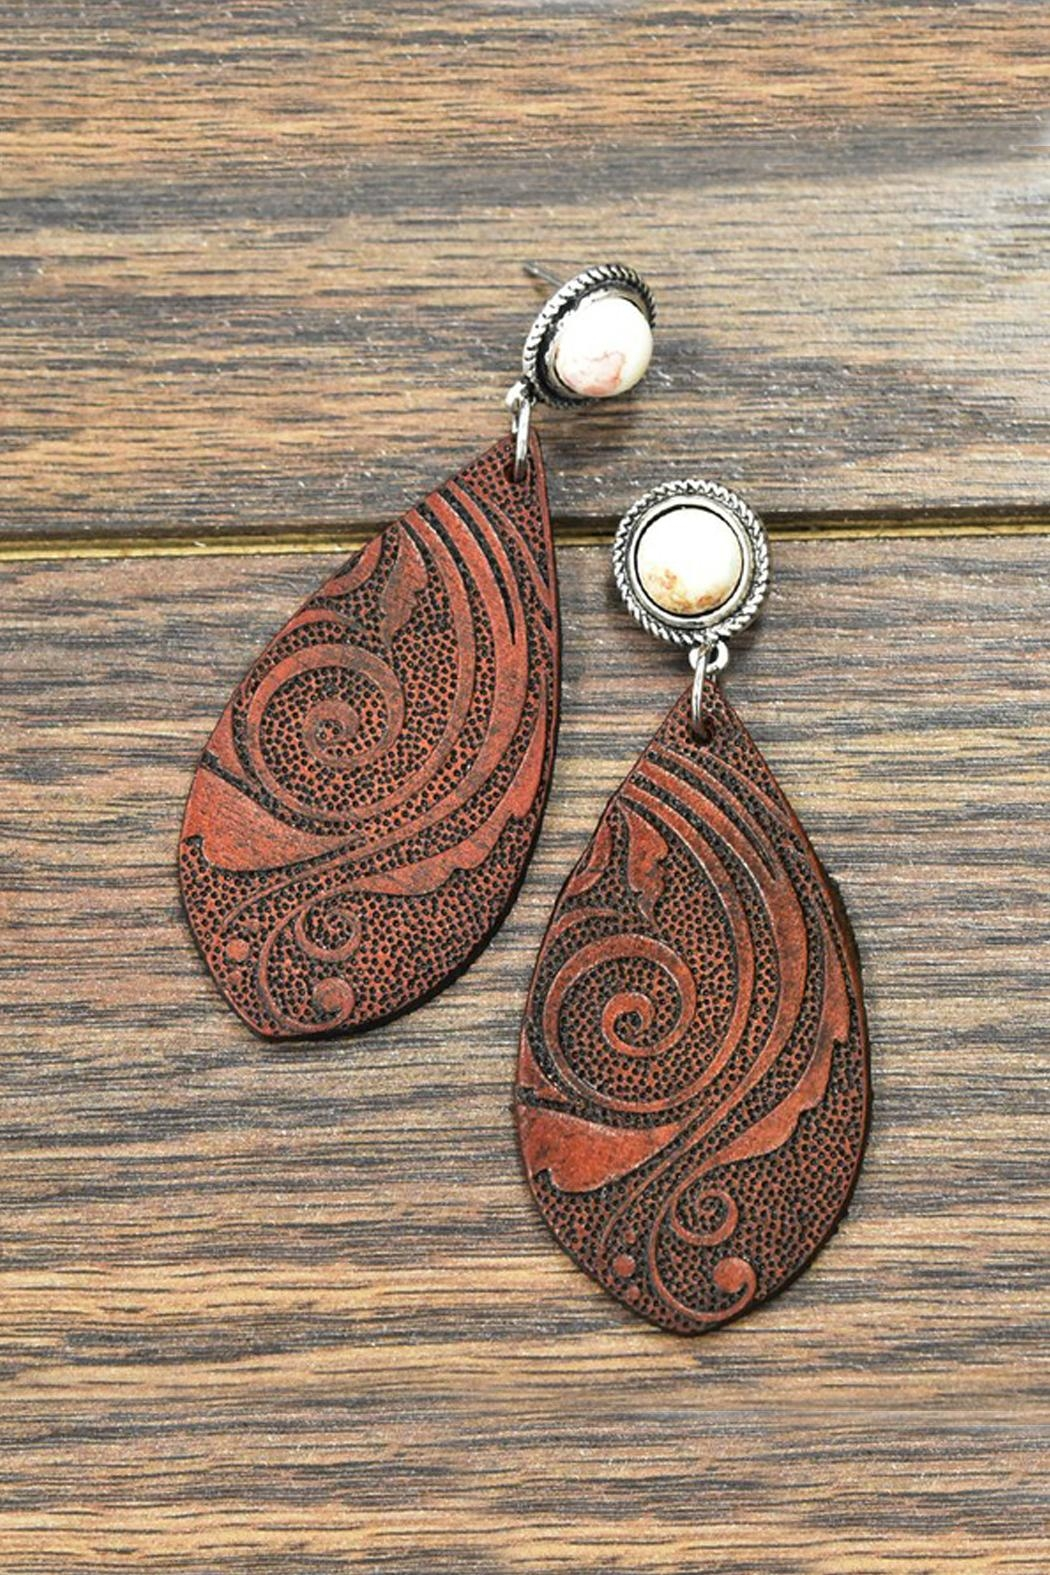 JChronicles Natural-White-Turquoise Tooling-Leather Earrings - Main Image